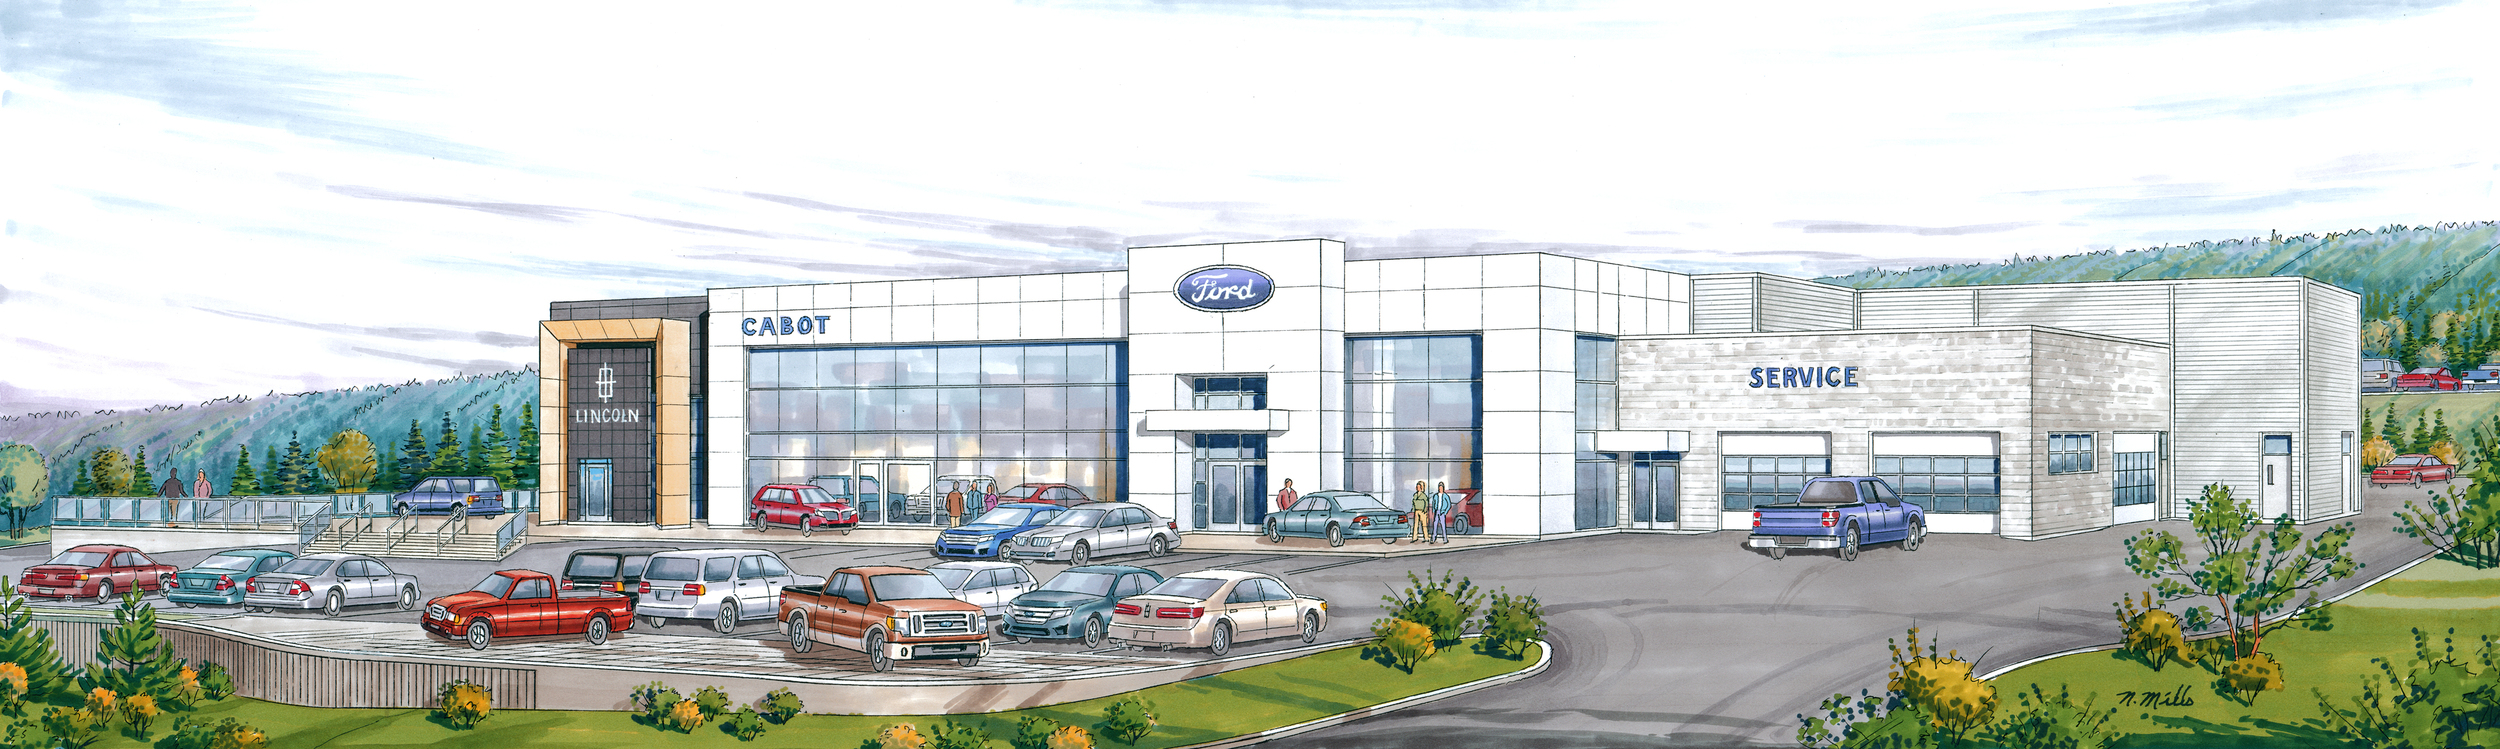 Cabot Ford